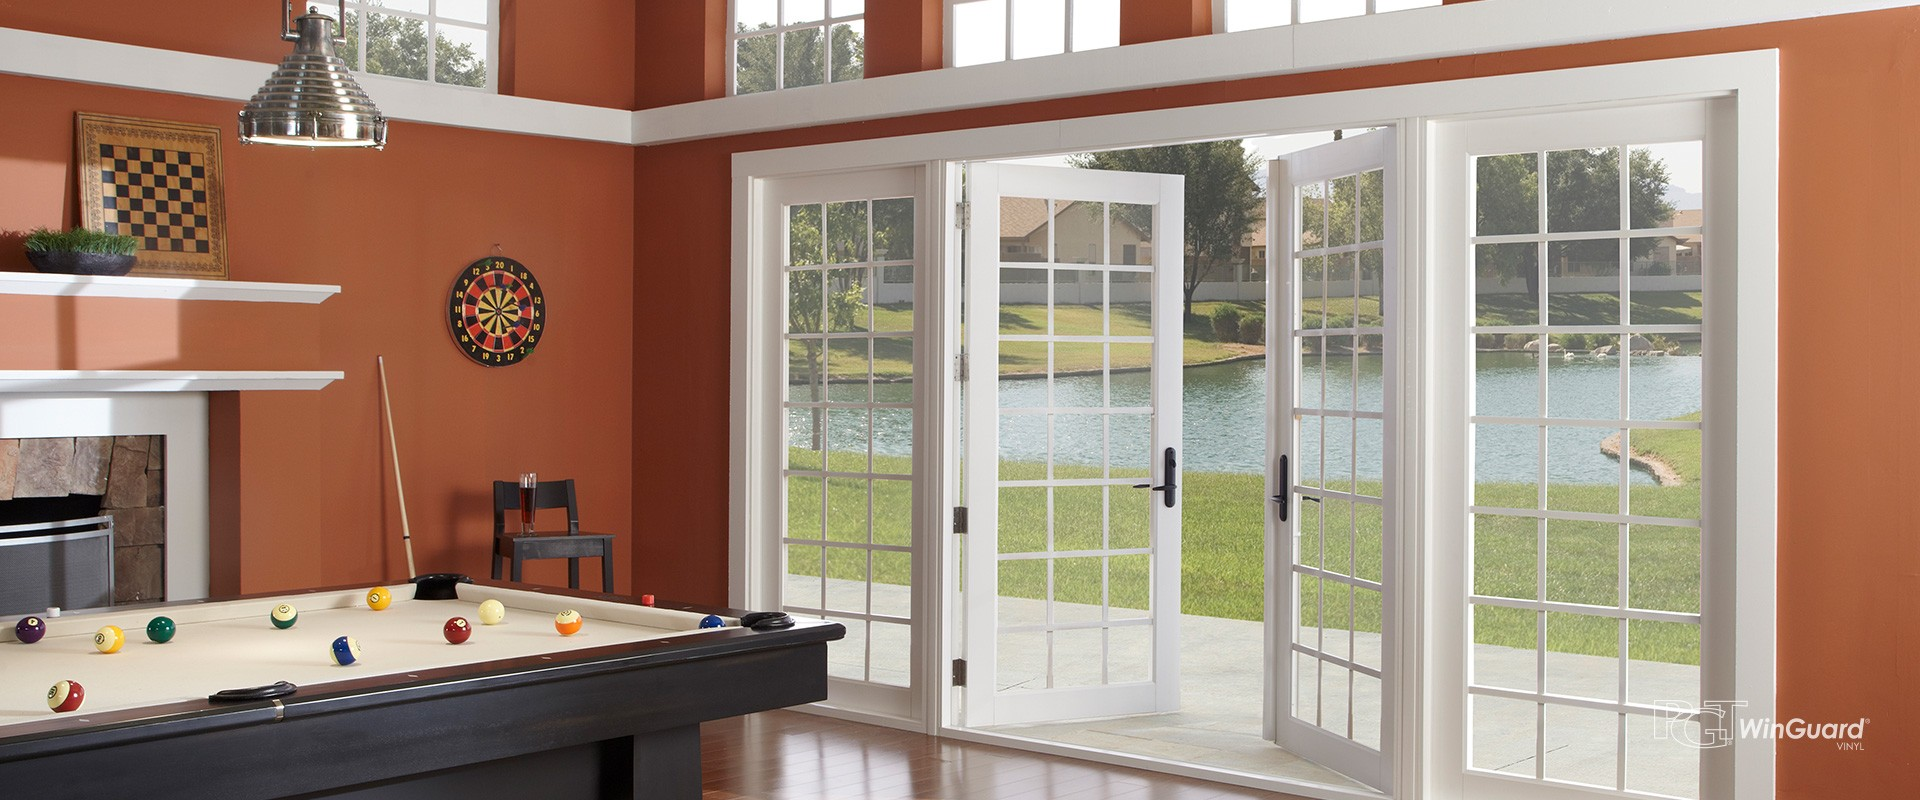 Why do you need impact windows and doors?